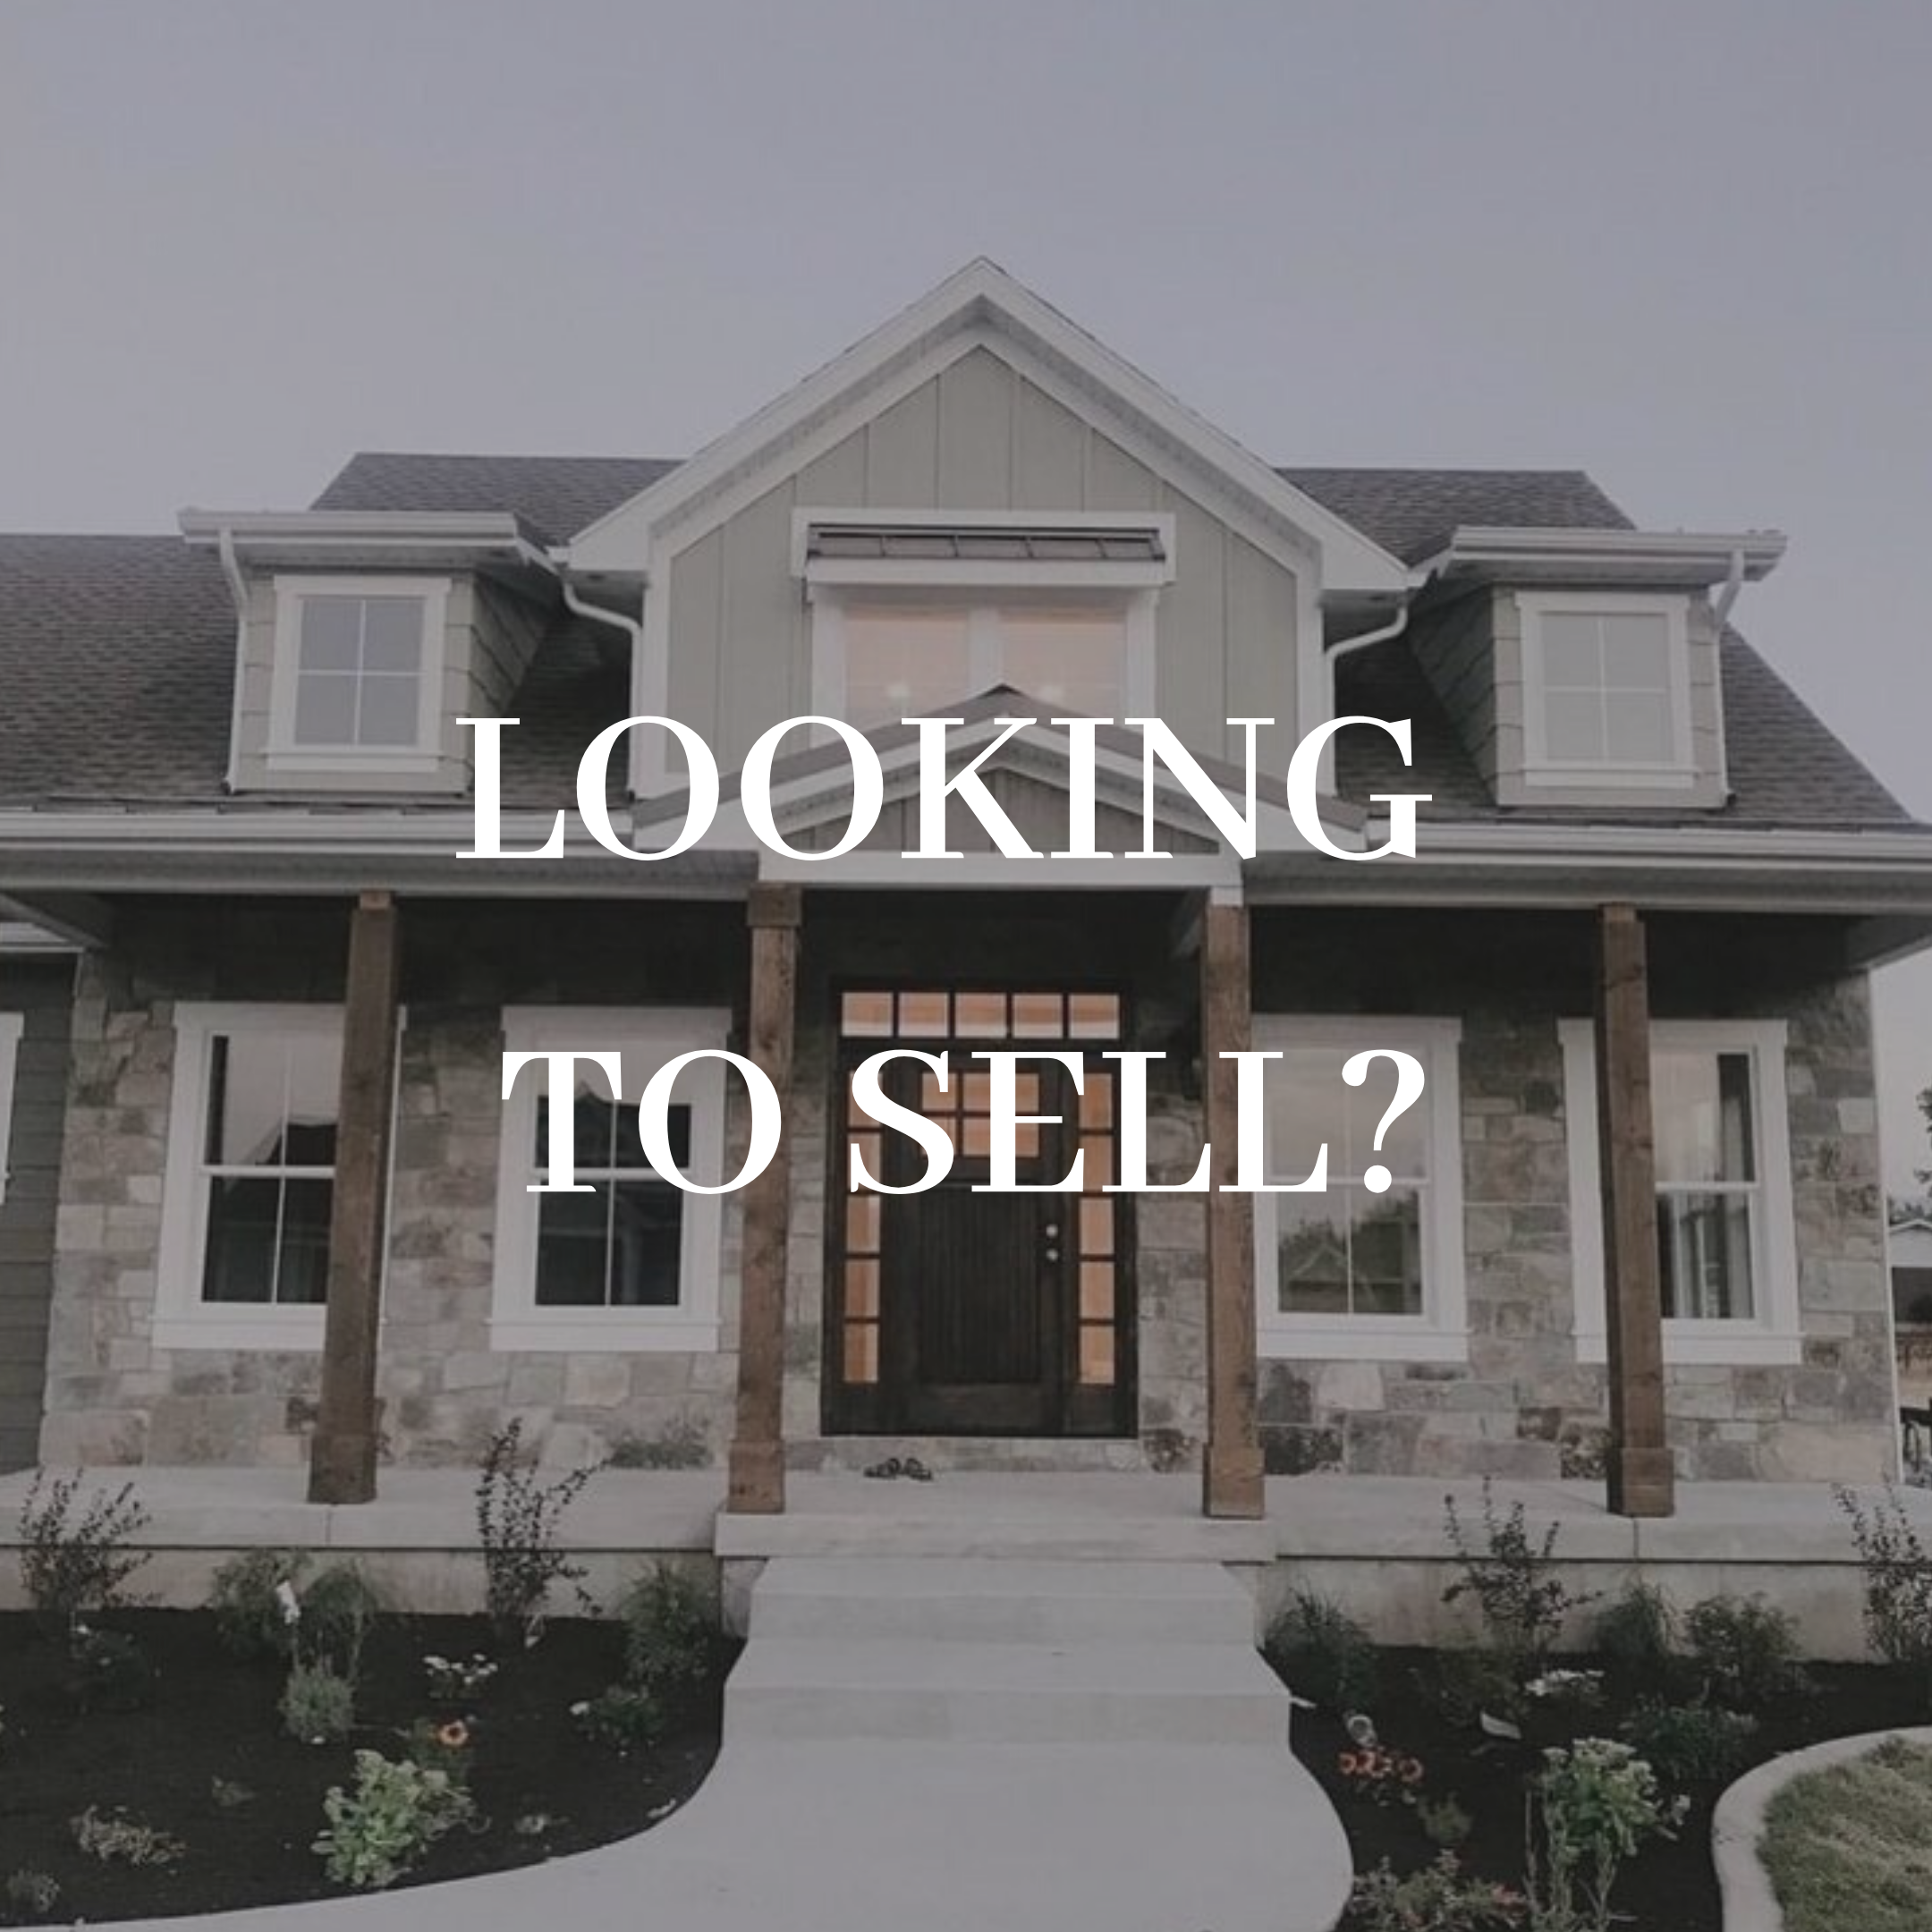 LOOKING TO SELL?